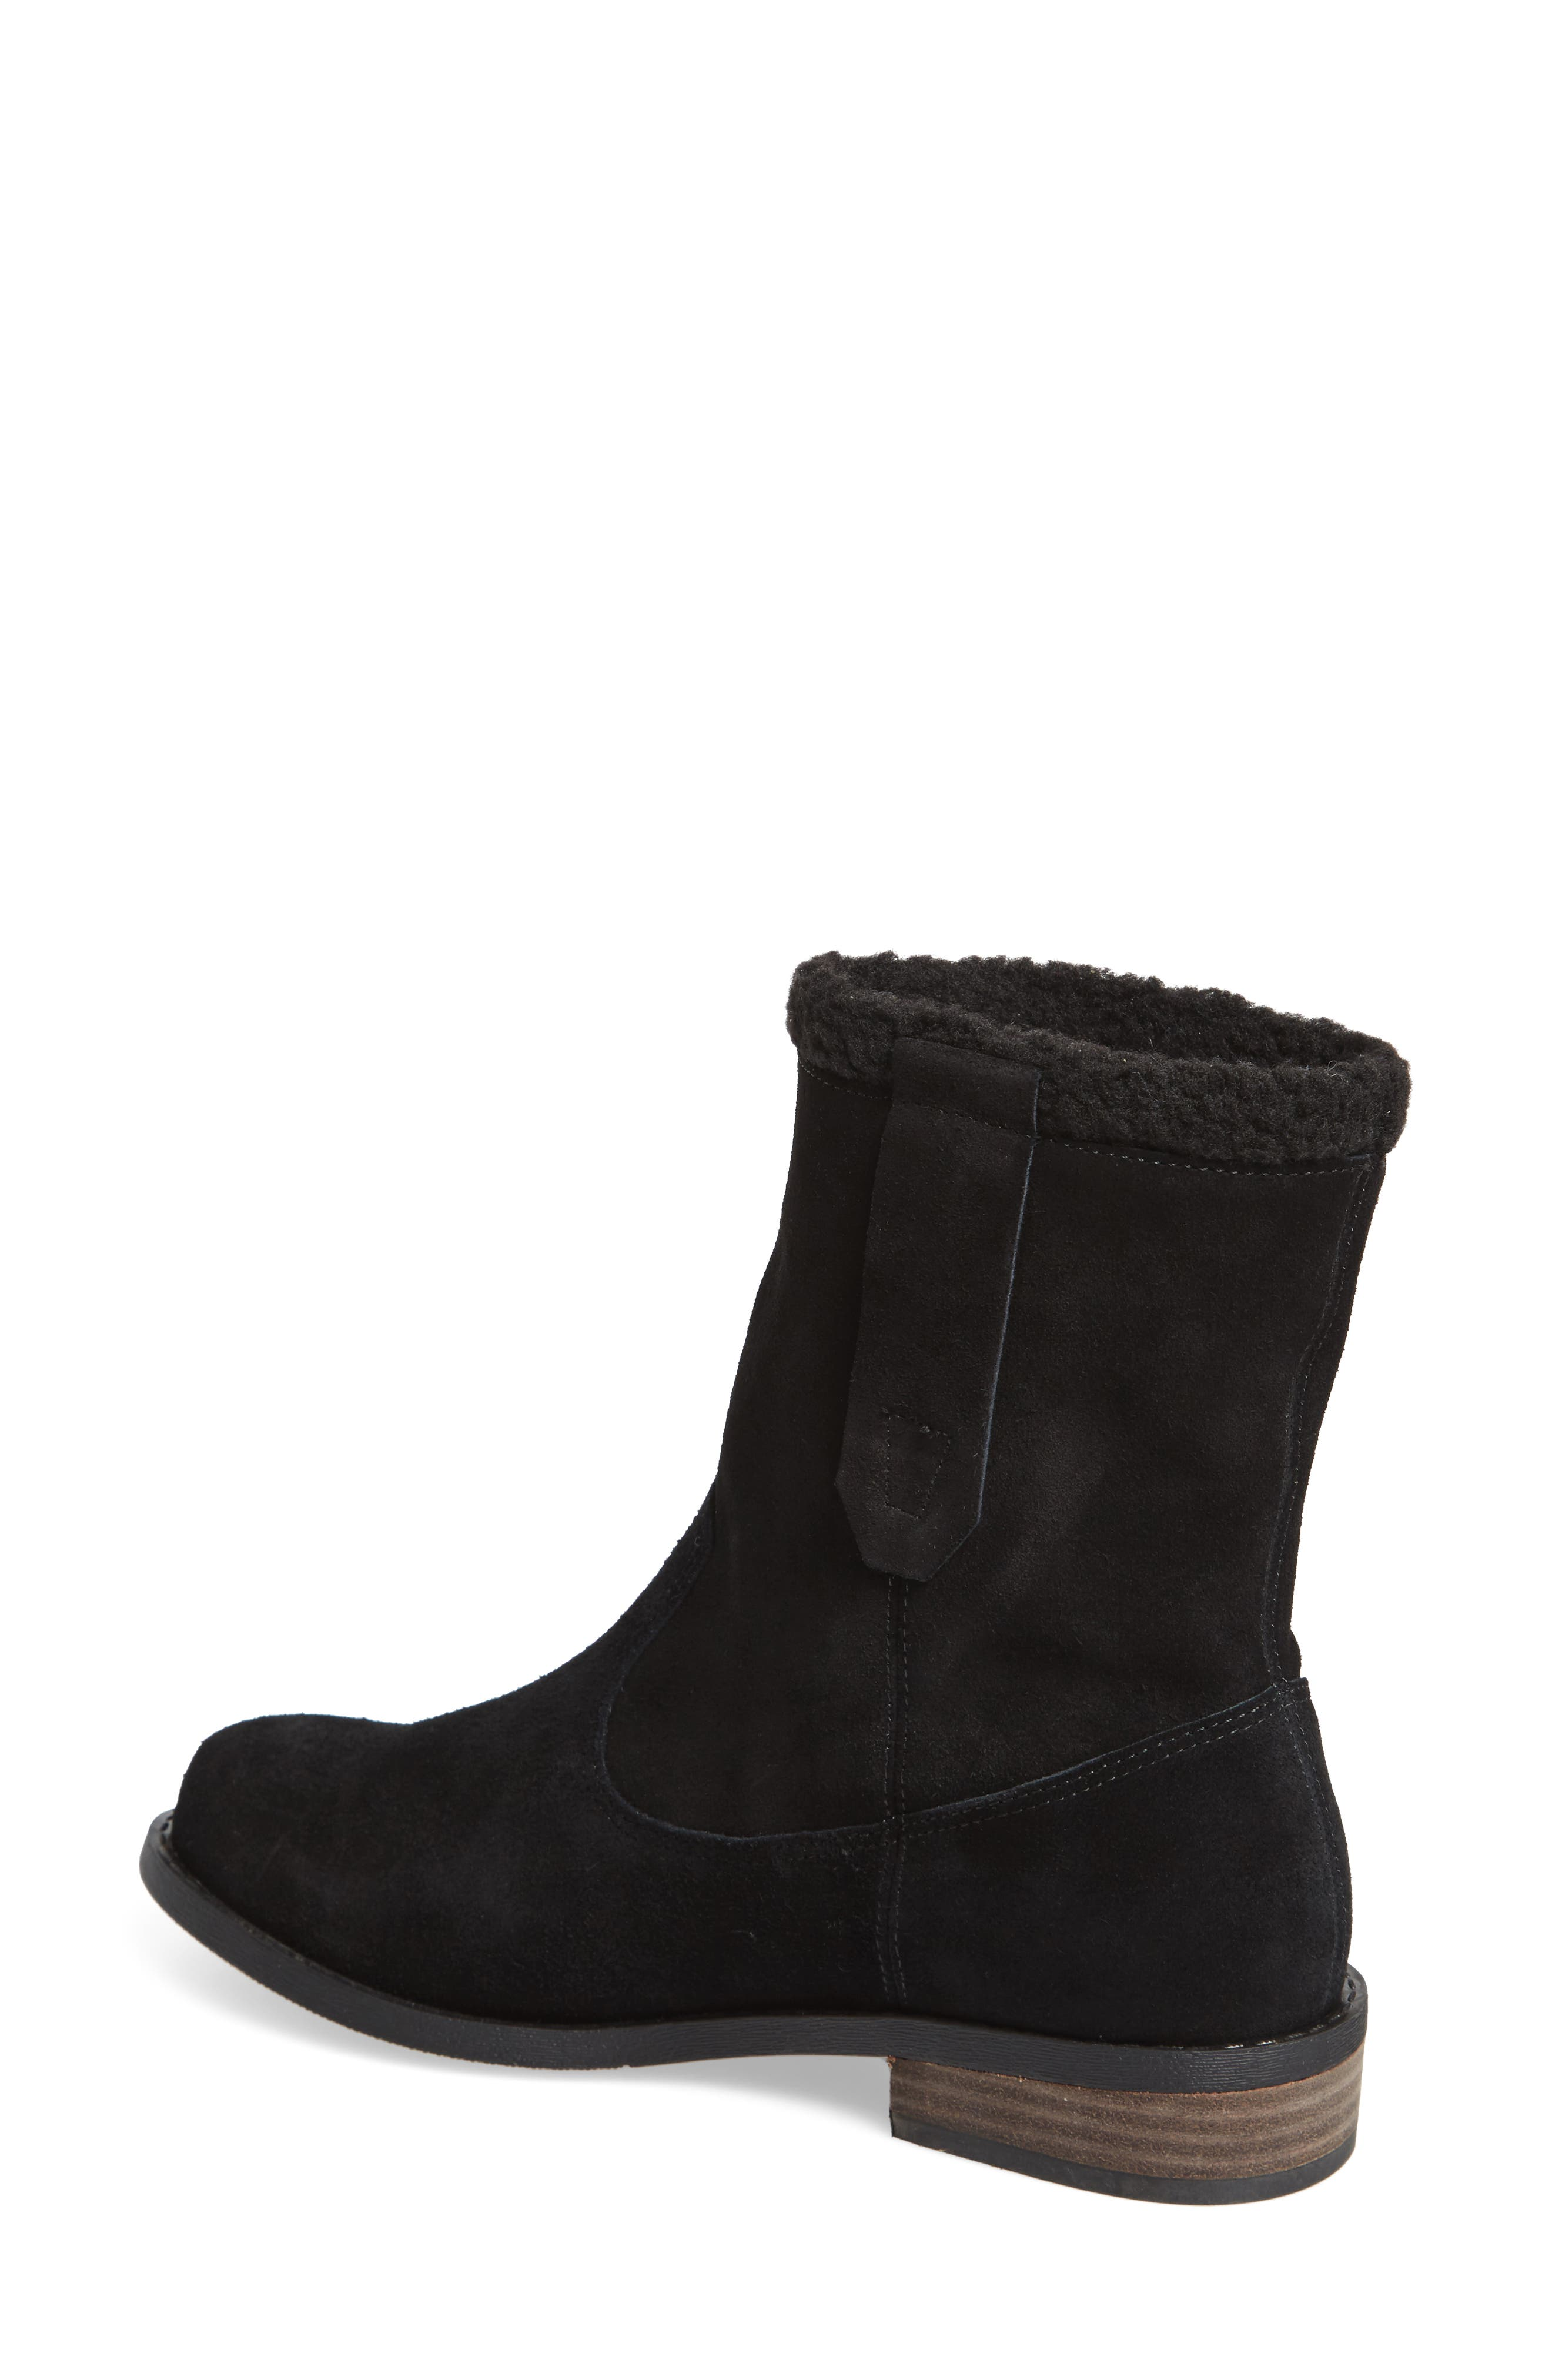 Verona Faux Shearling Boot,                             Alternate thumbnail 2, color,                             BLACK/ BLACK SUEDE